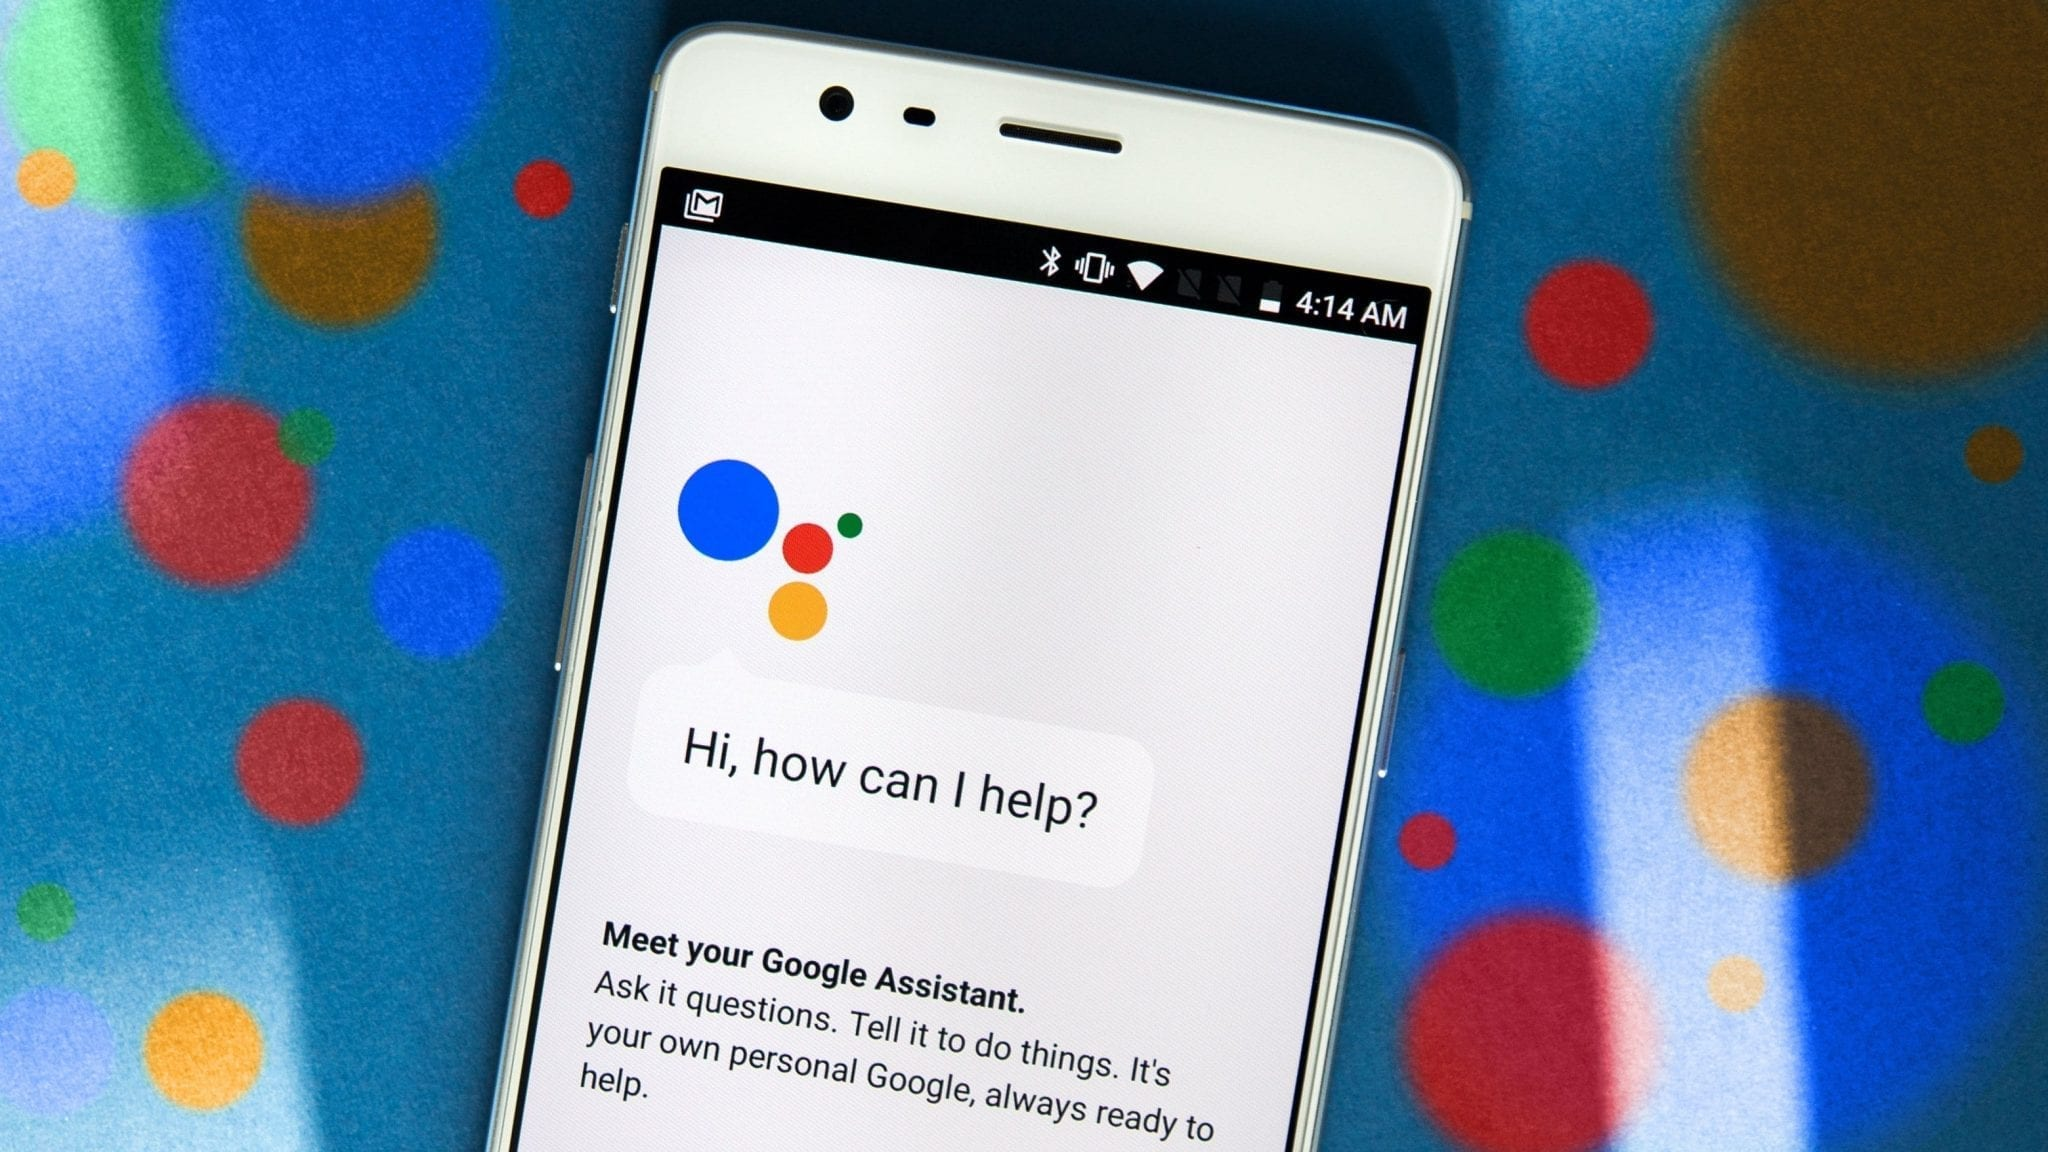 4 Very cool things you can do with Google Assistant